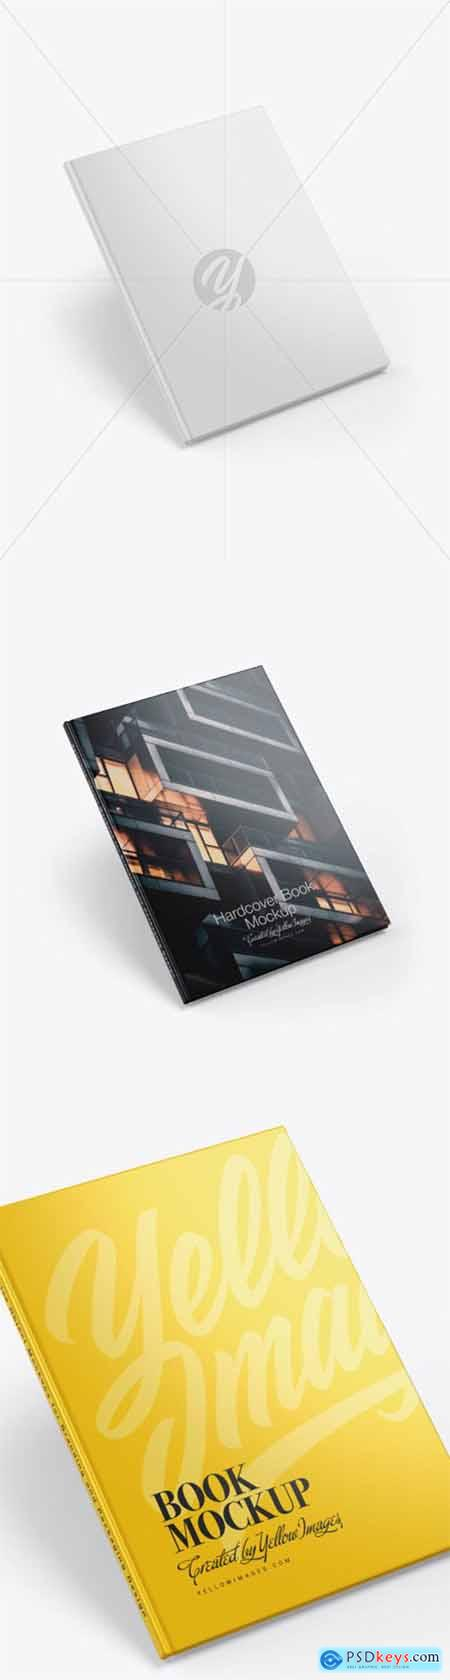 Hardcover Book w- Glossy Cover Mockup 55343